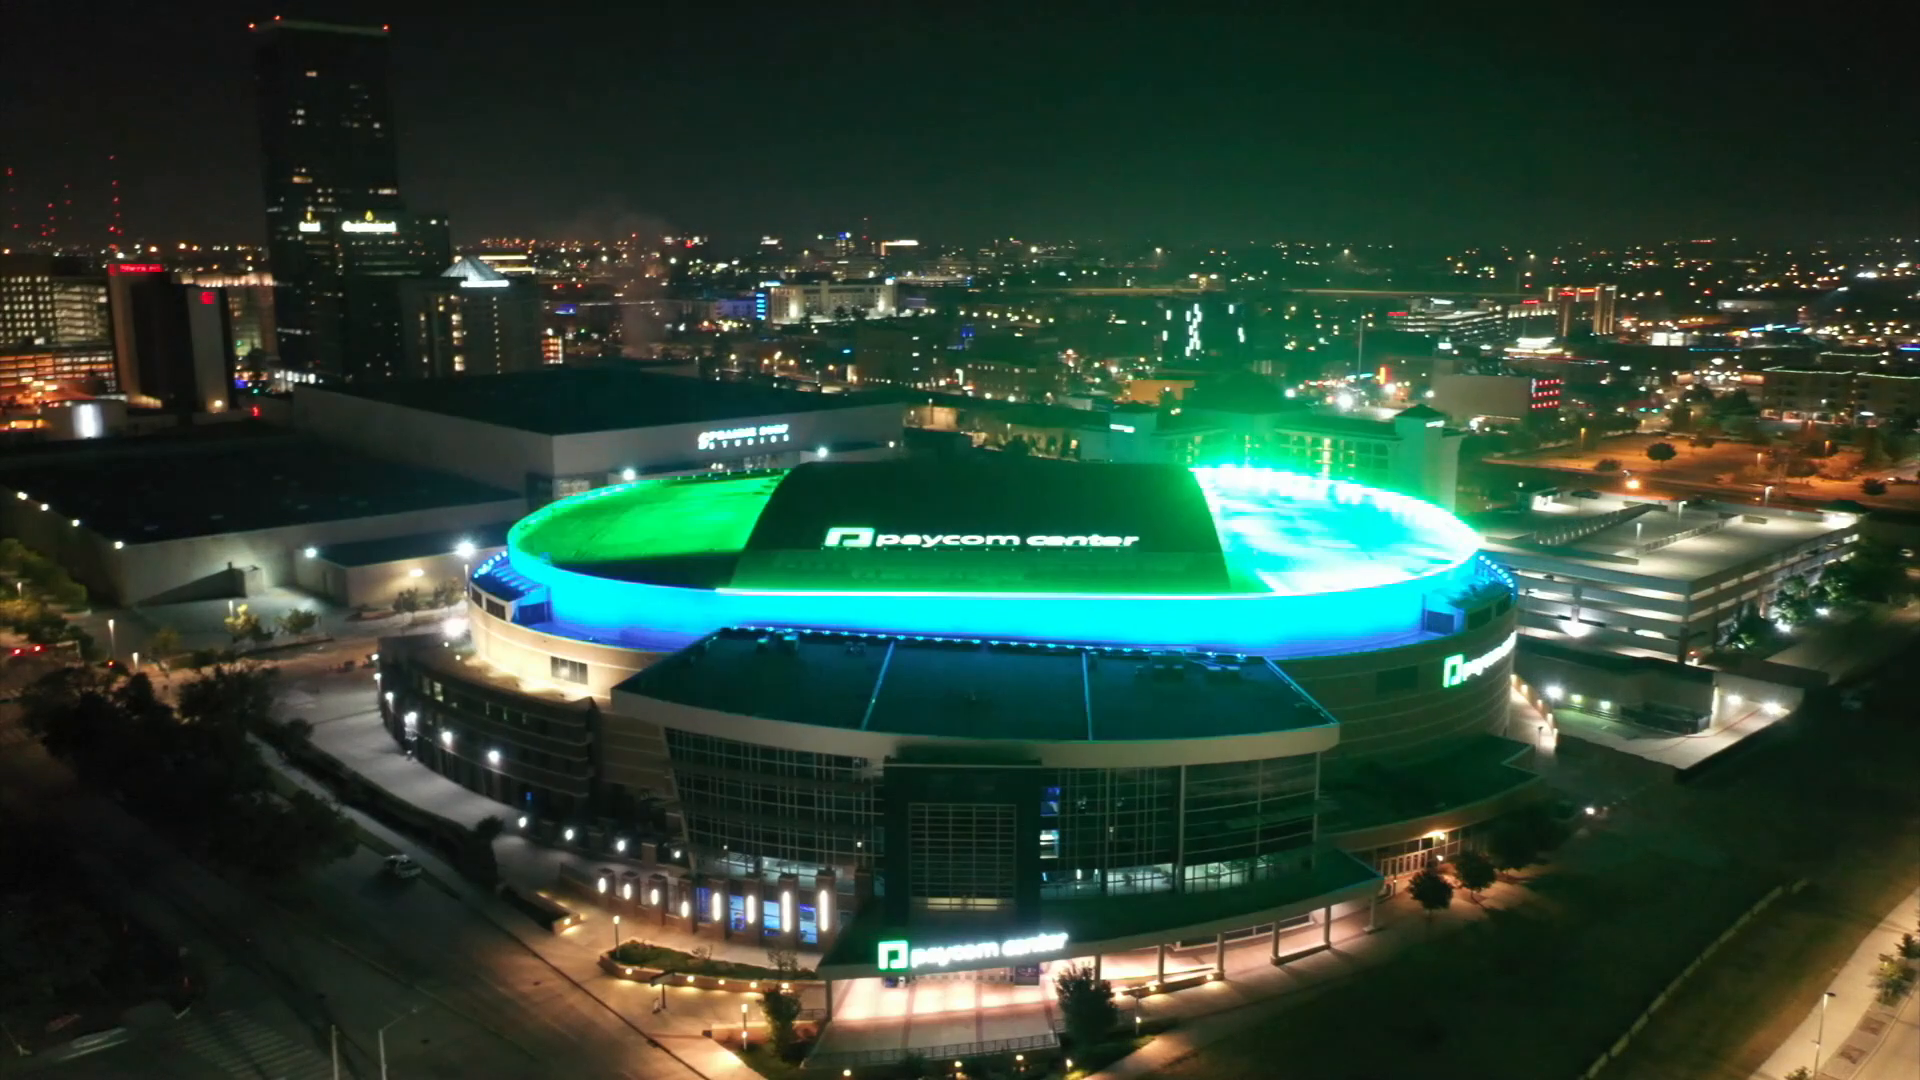 Welcome to Paycom Center: The lights are on